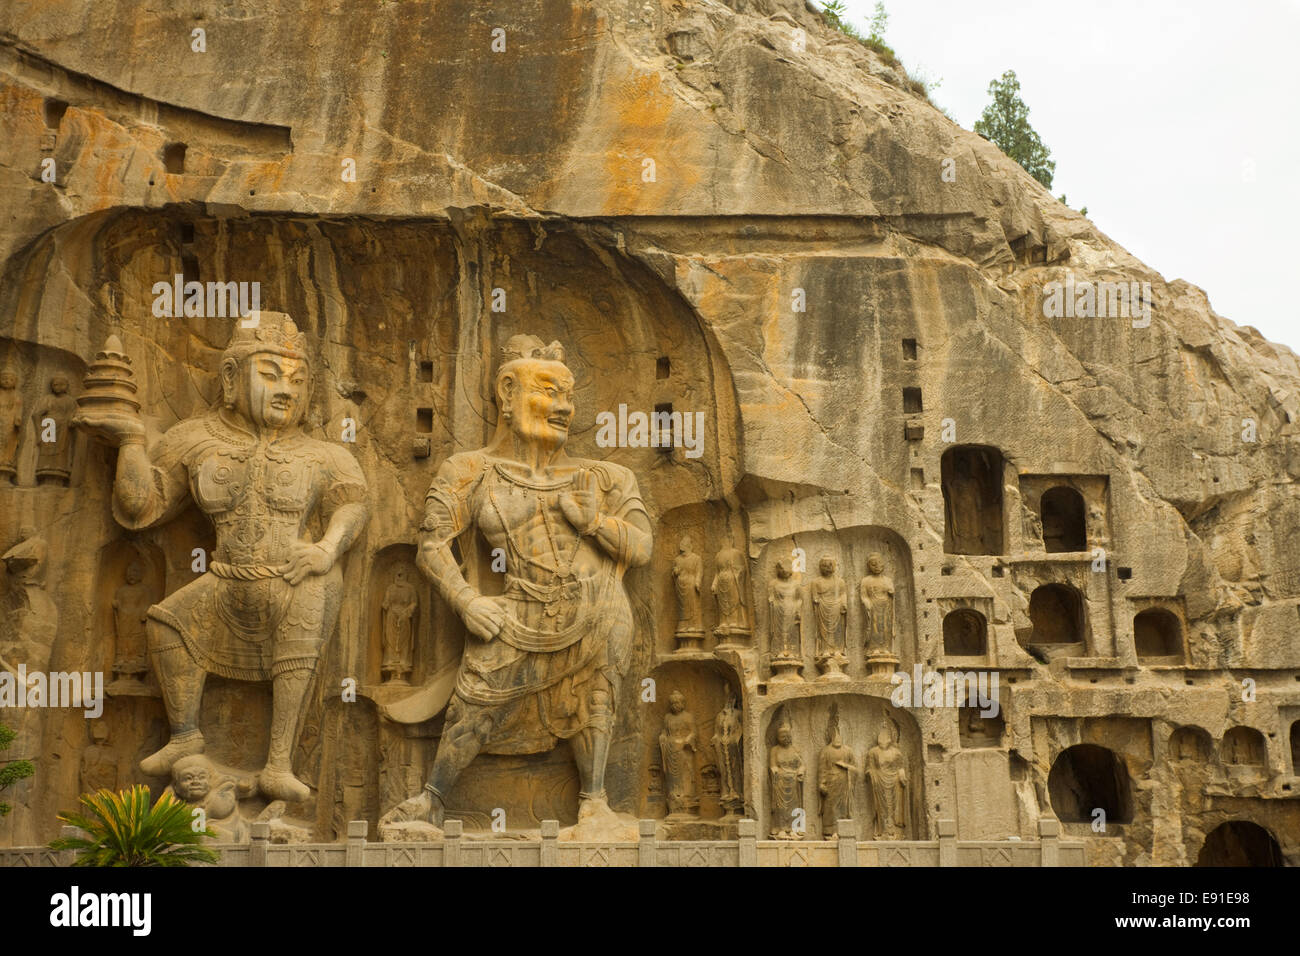 Large Longmen Grottoes Buddhist Carvings - Stock Image